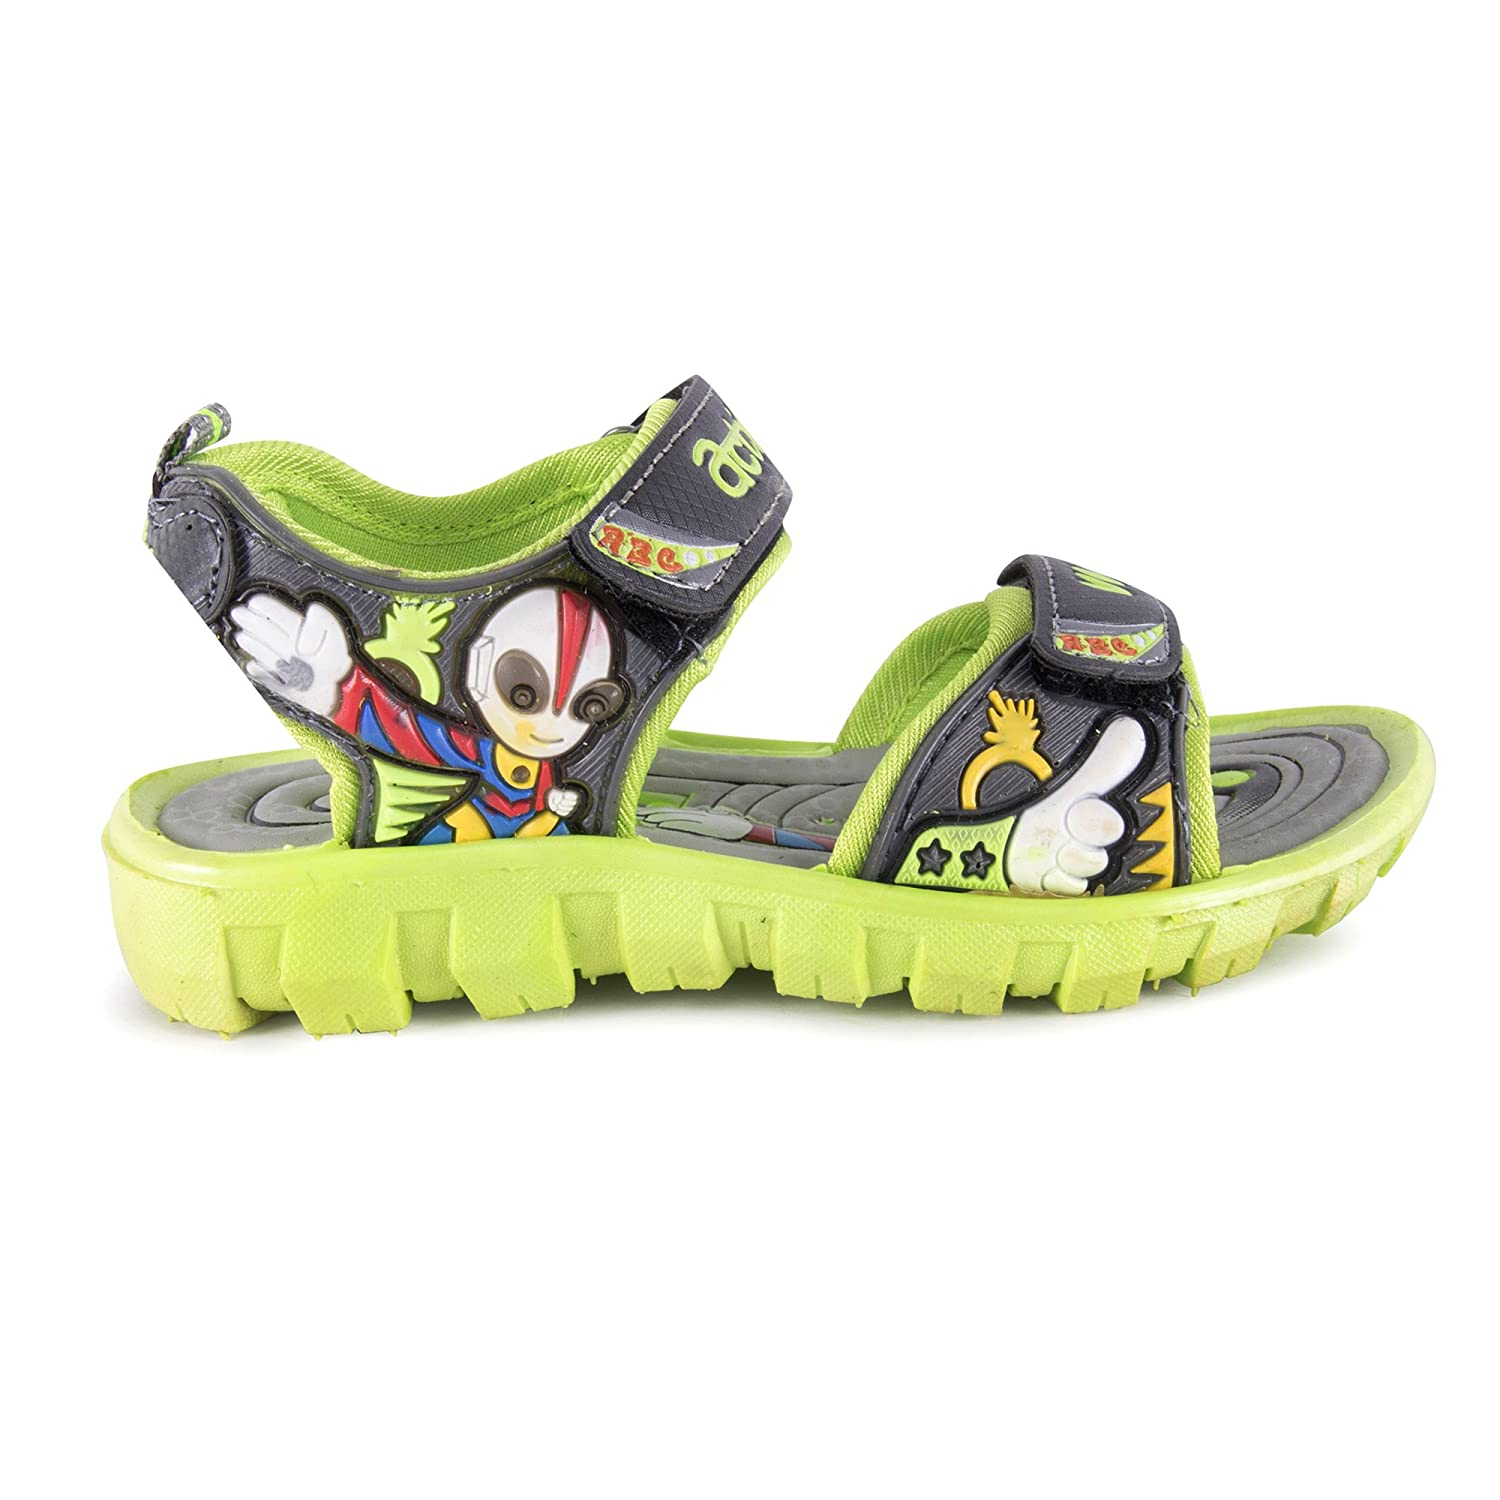 2ca3fe5853f0c Action Shoes Blue-Yellow Sandals KS-123-BLUE-YELLOW  Amazon.in  Shoes    Handbags